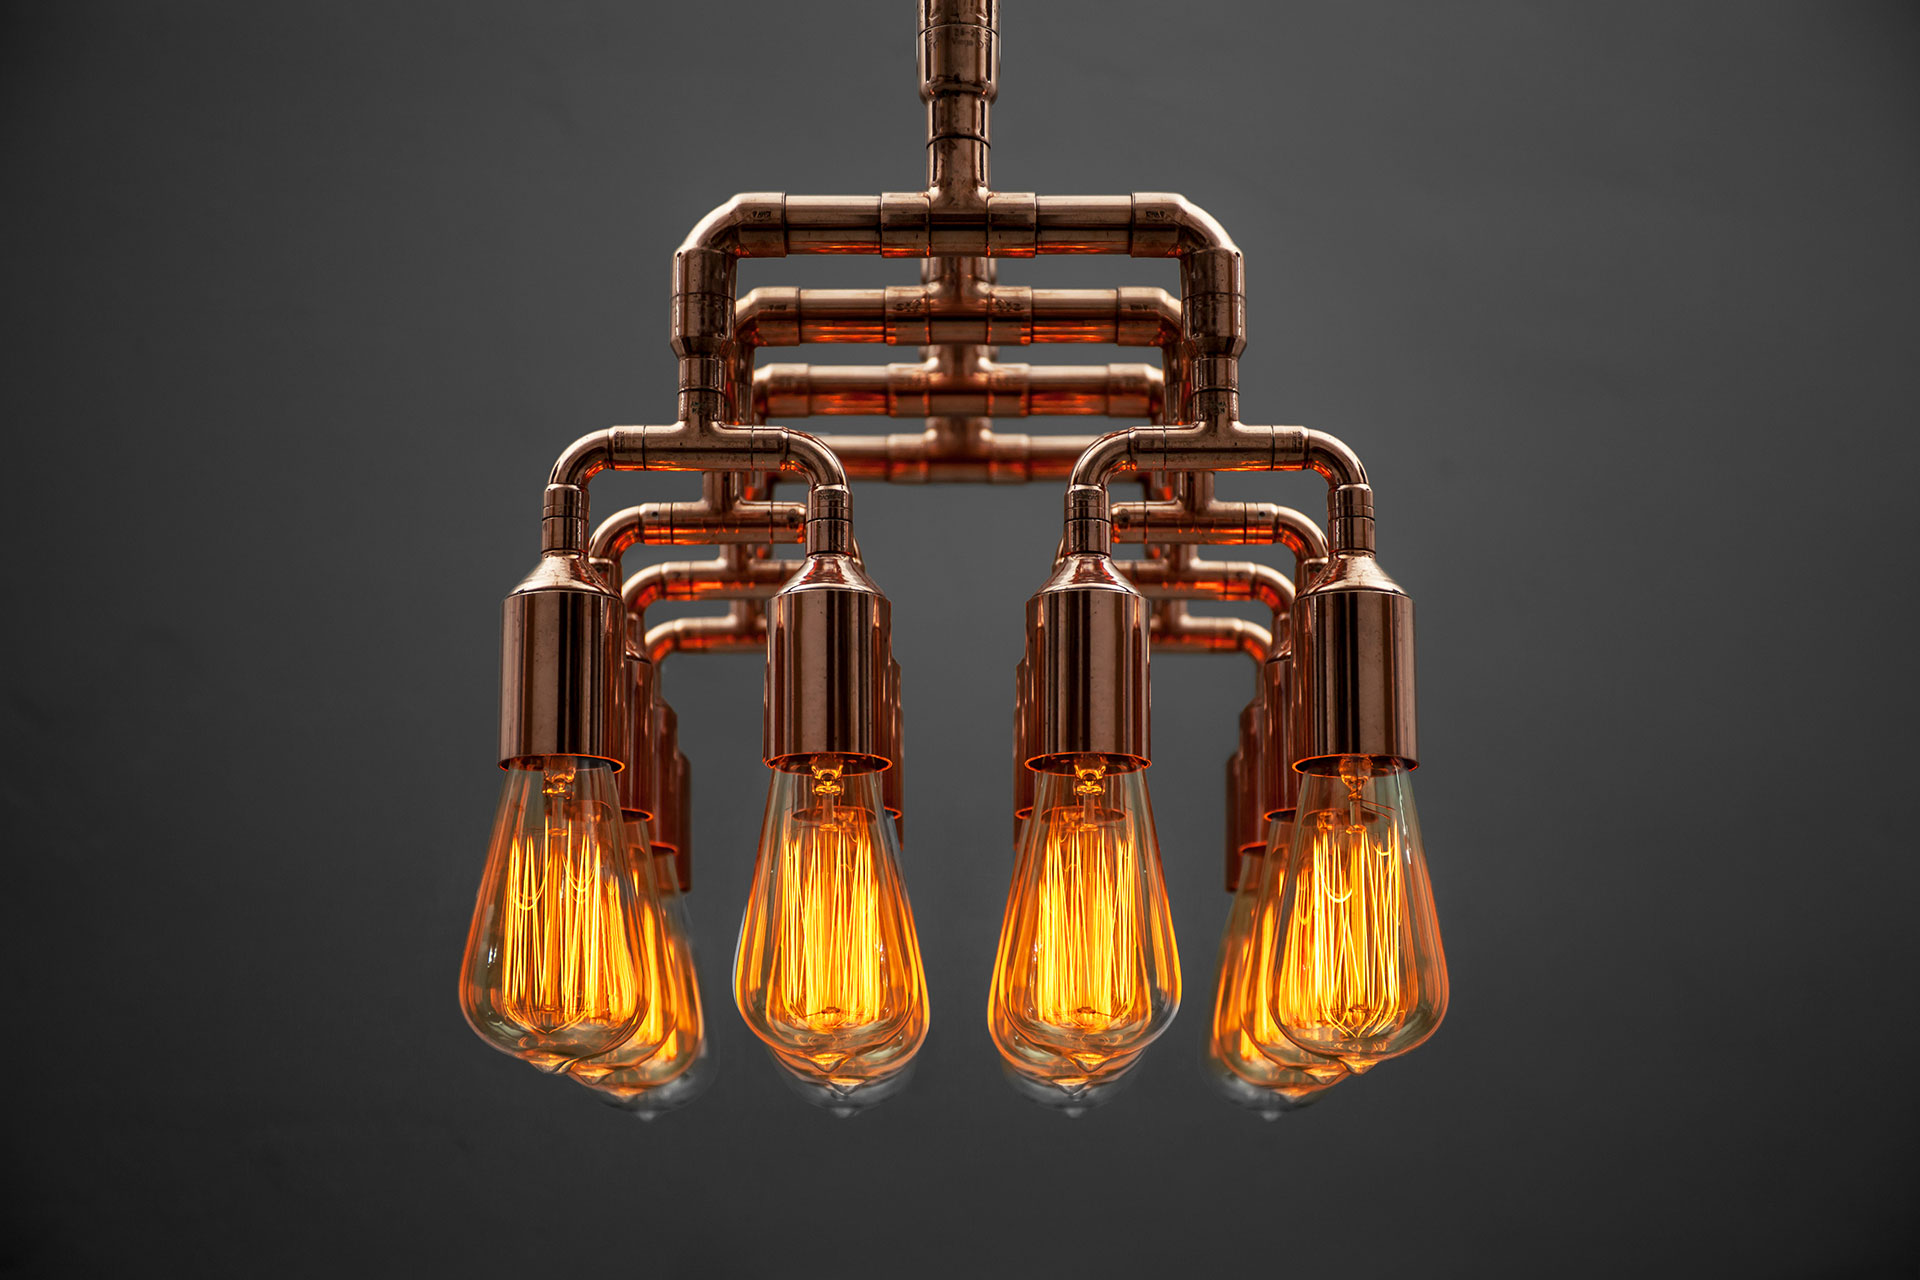 Steampunk design chandelier made of copper pipes with vintage Edison bulbs